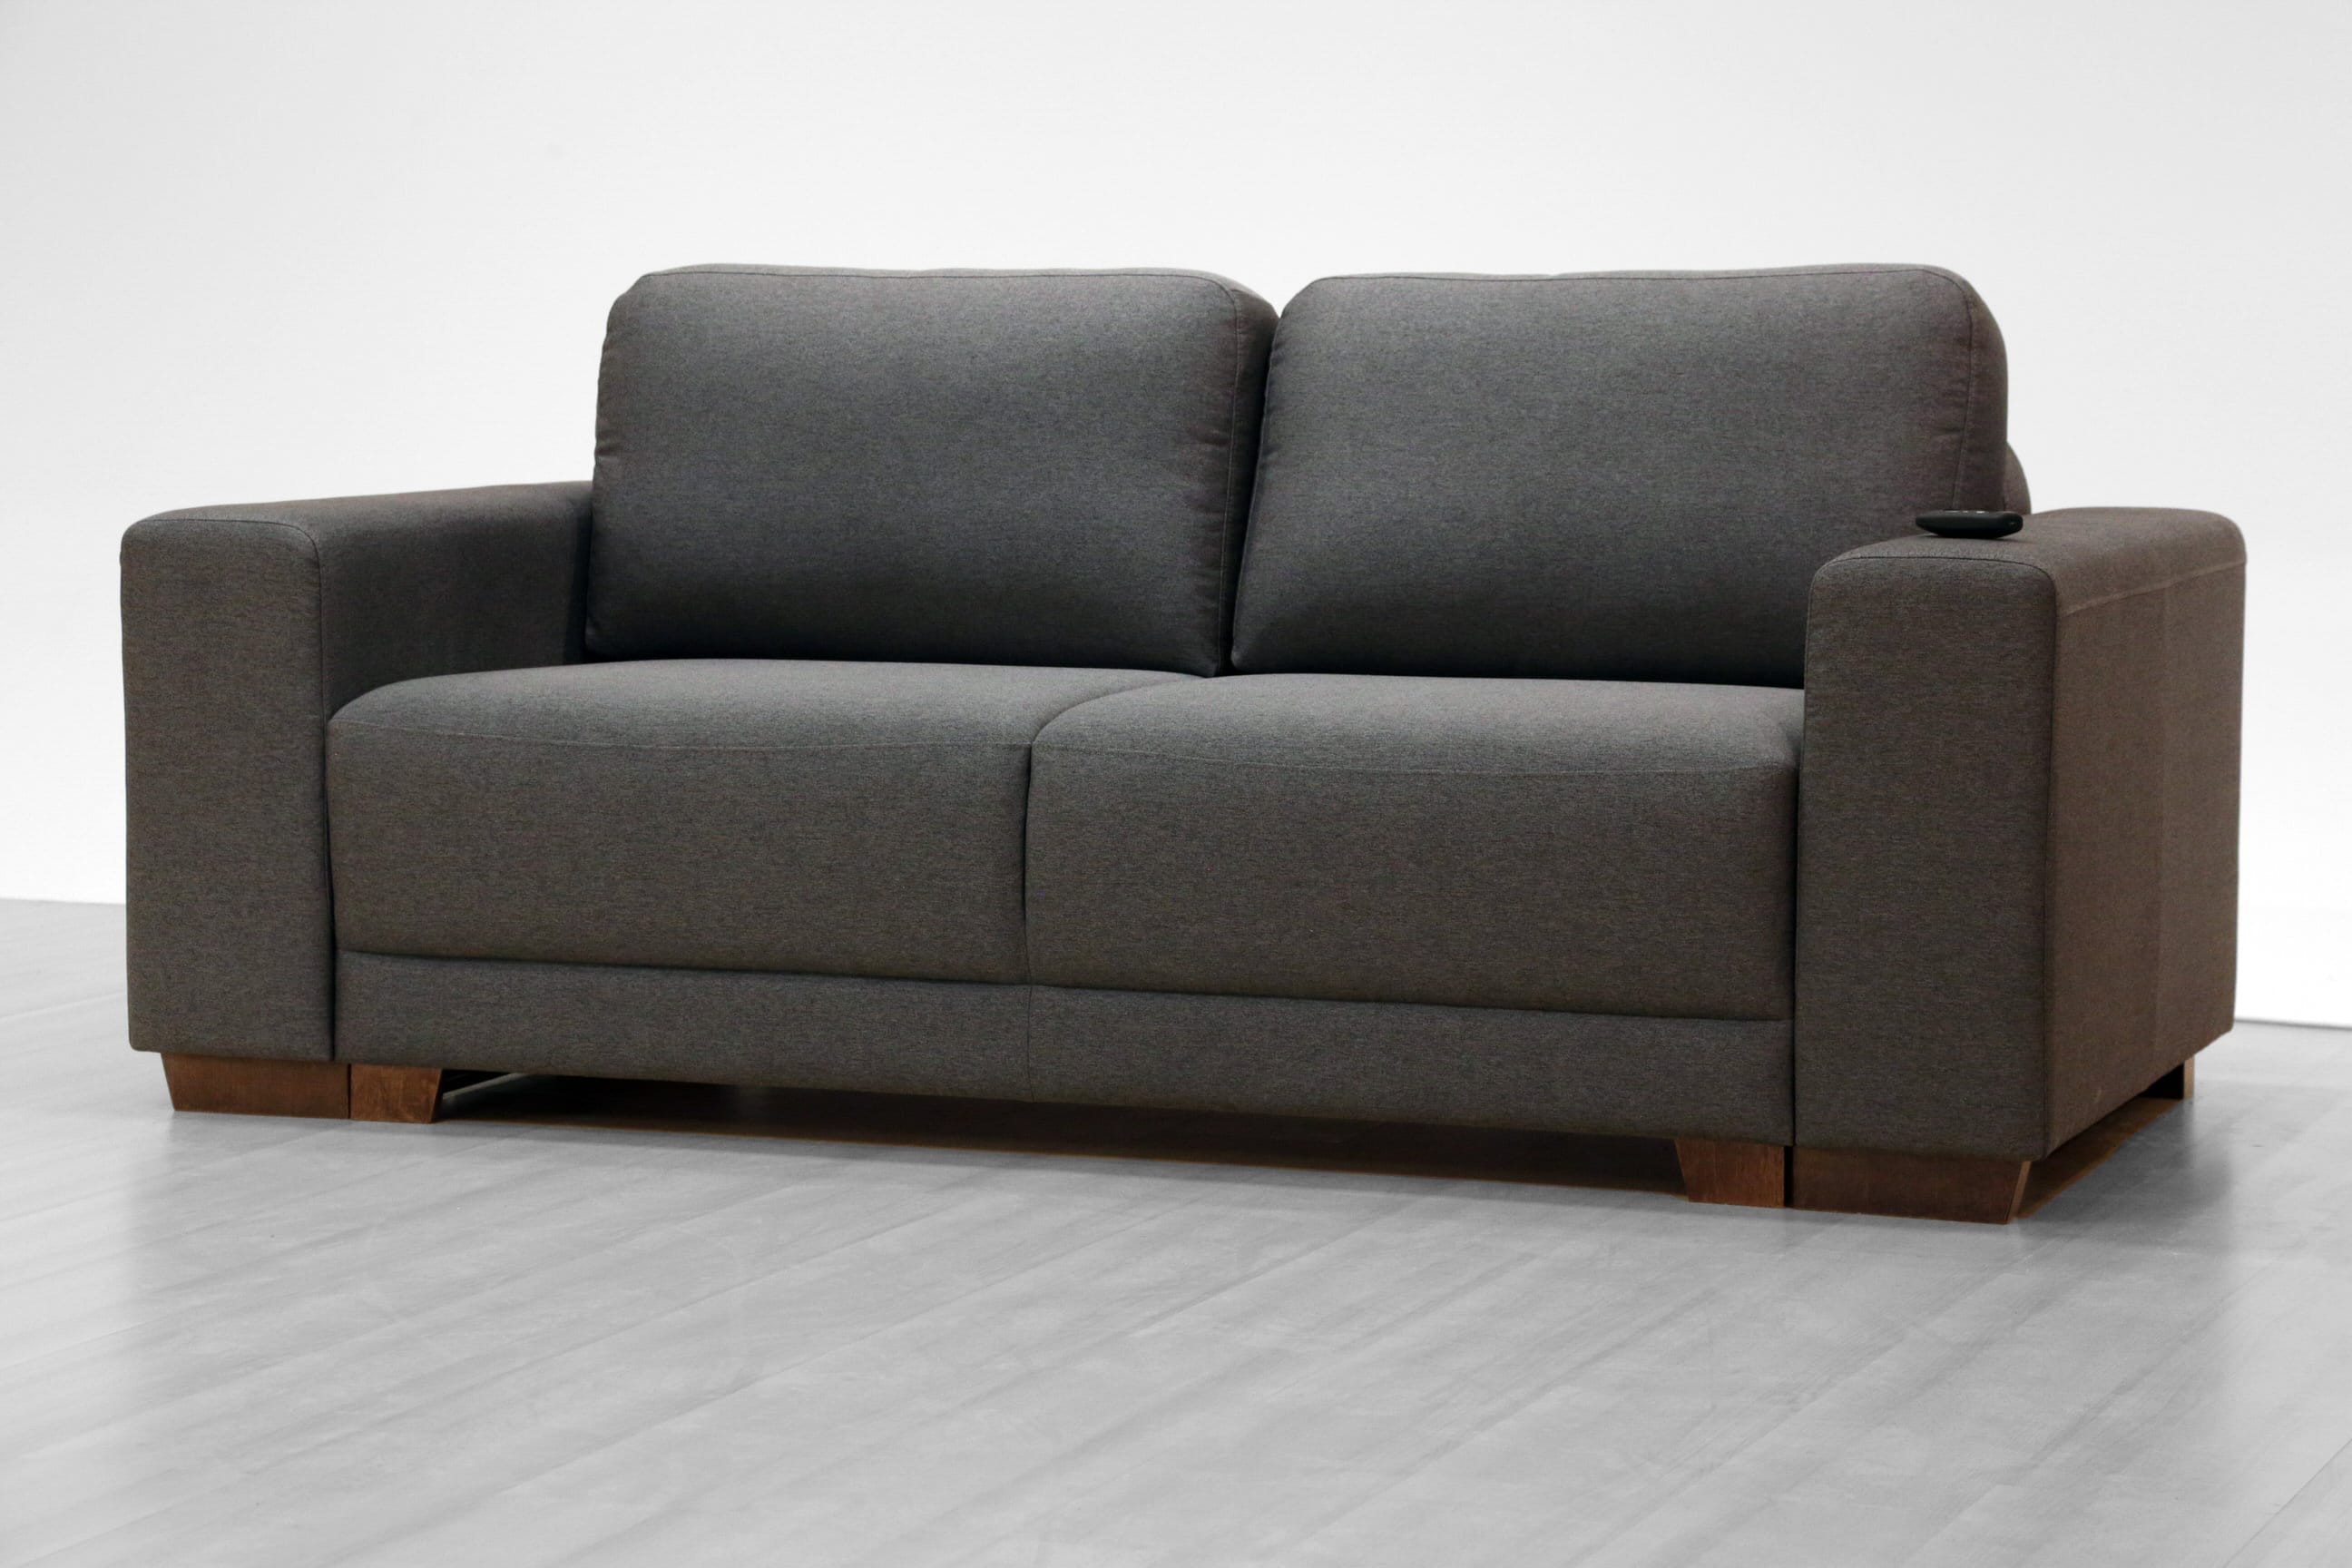 Furniture Toronto Com Toronto Loveseat Sleeper Queen Size By Luonto Furniture